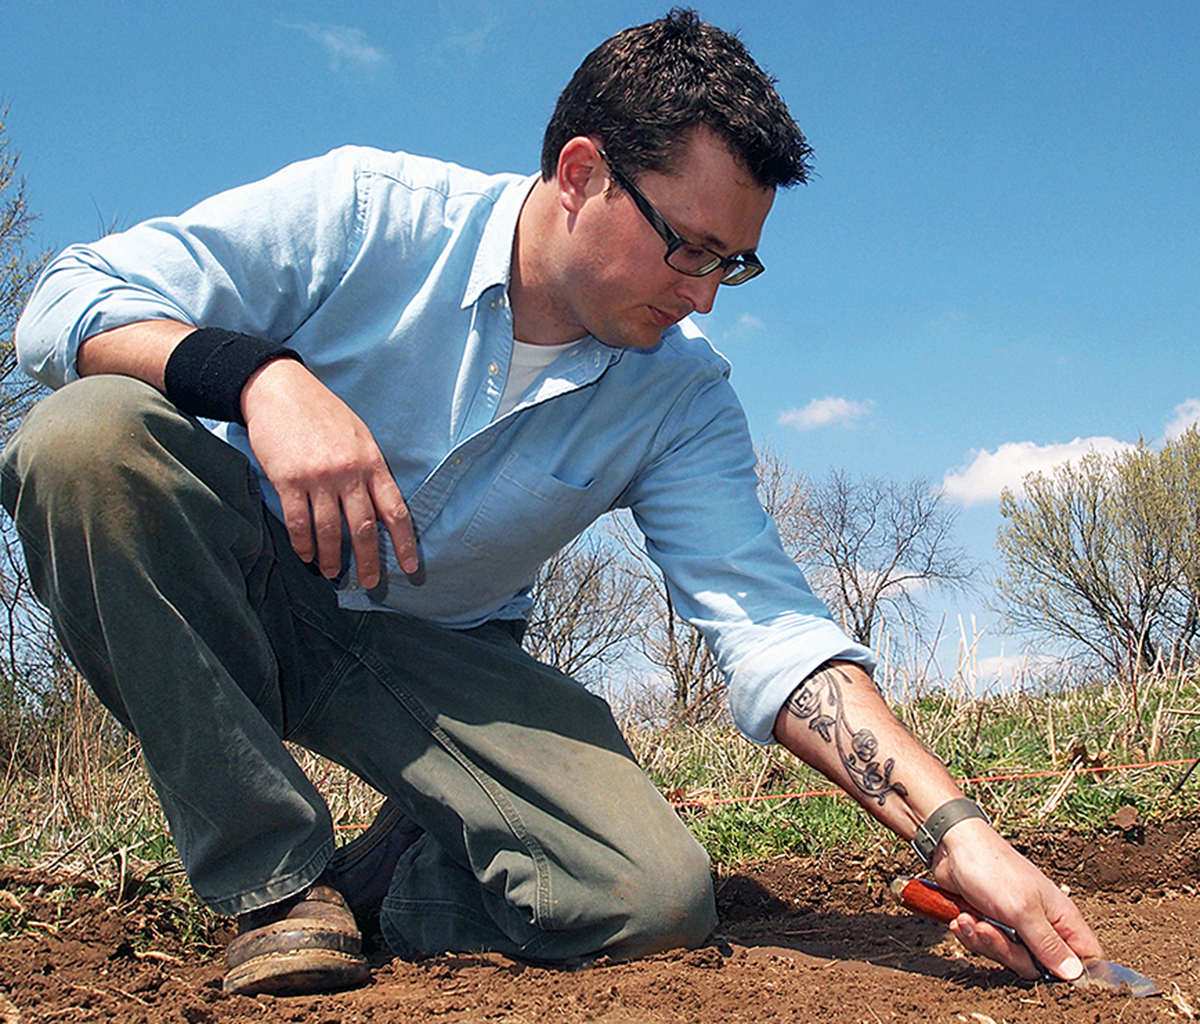 MTSU adjunct/state archaeologist will reveal historic tattoo practices in June 24 public talk